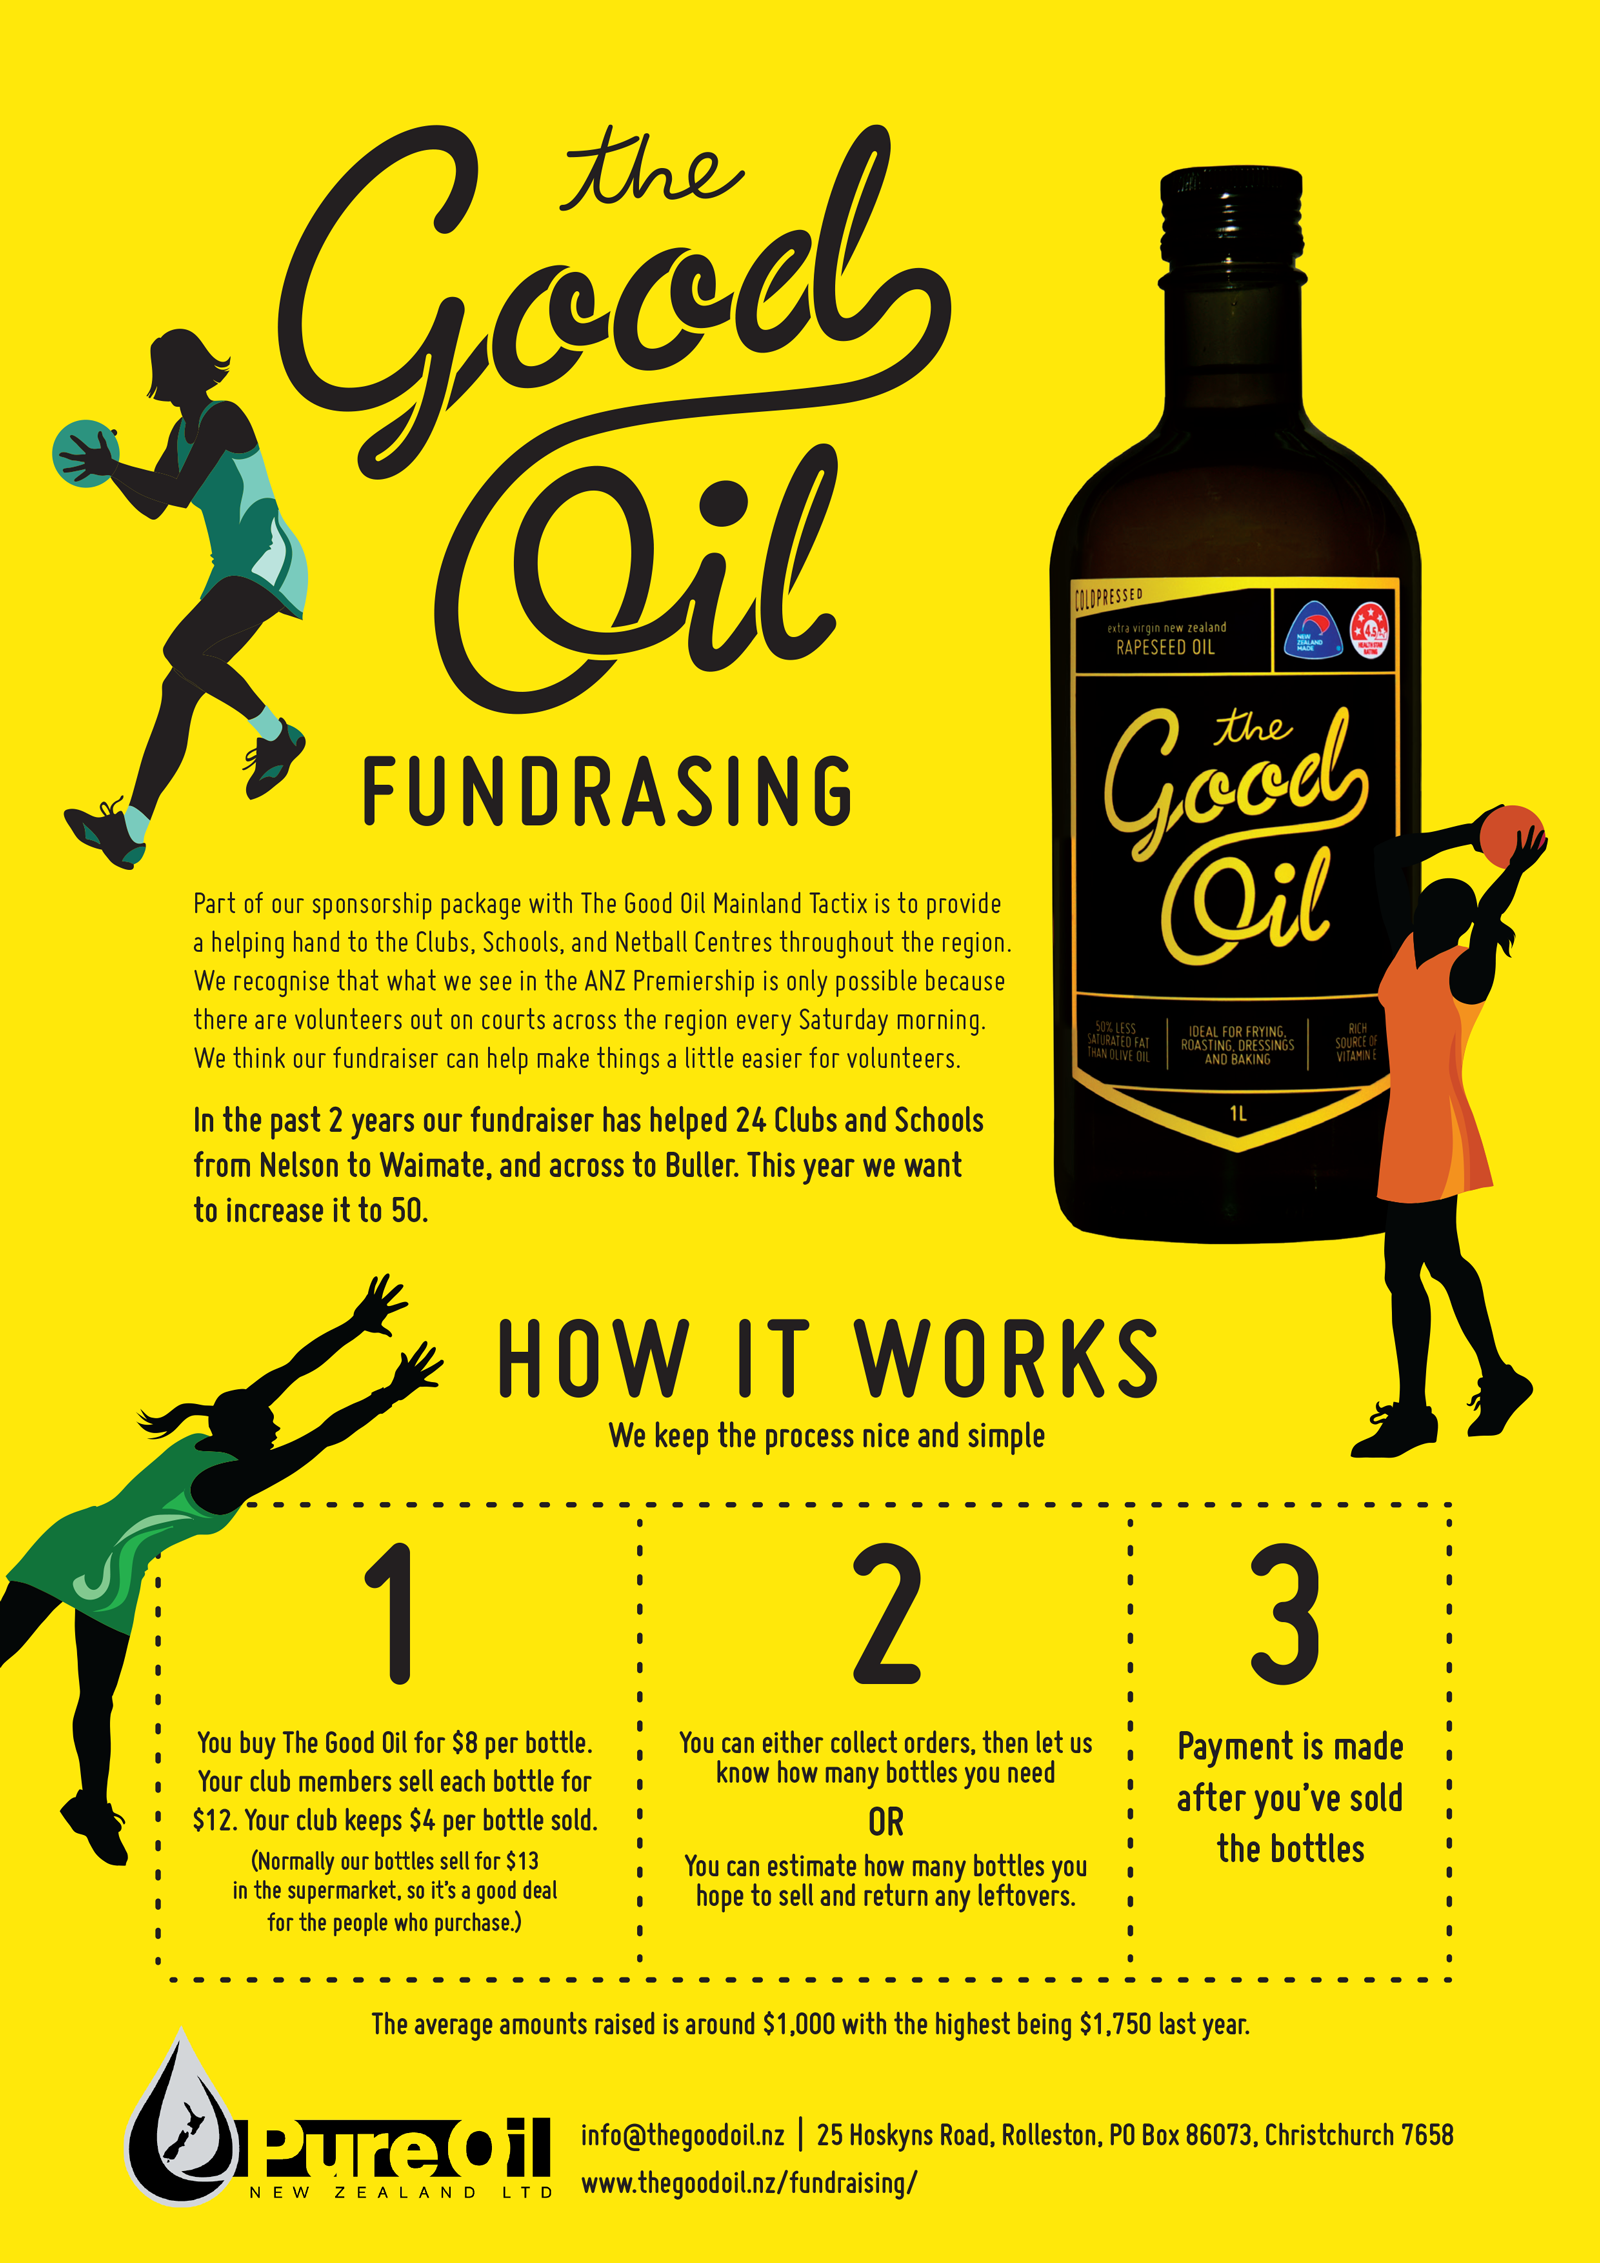 PURE OIL The Good Oil Fundraising Flyer